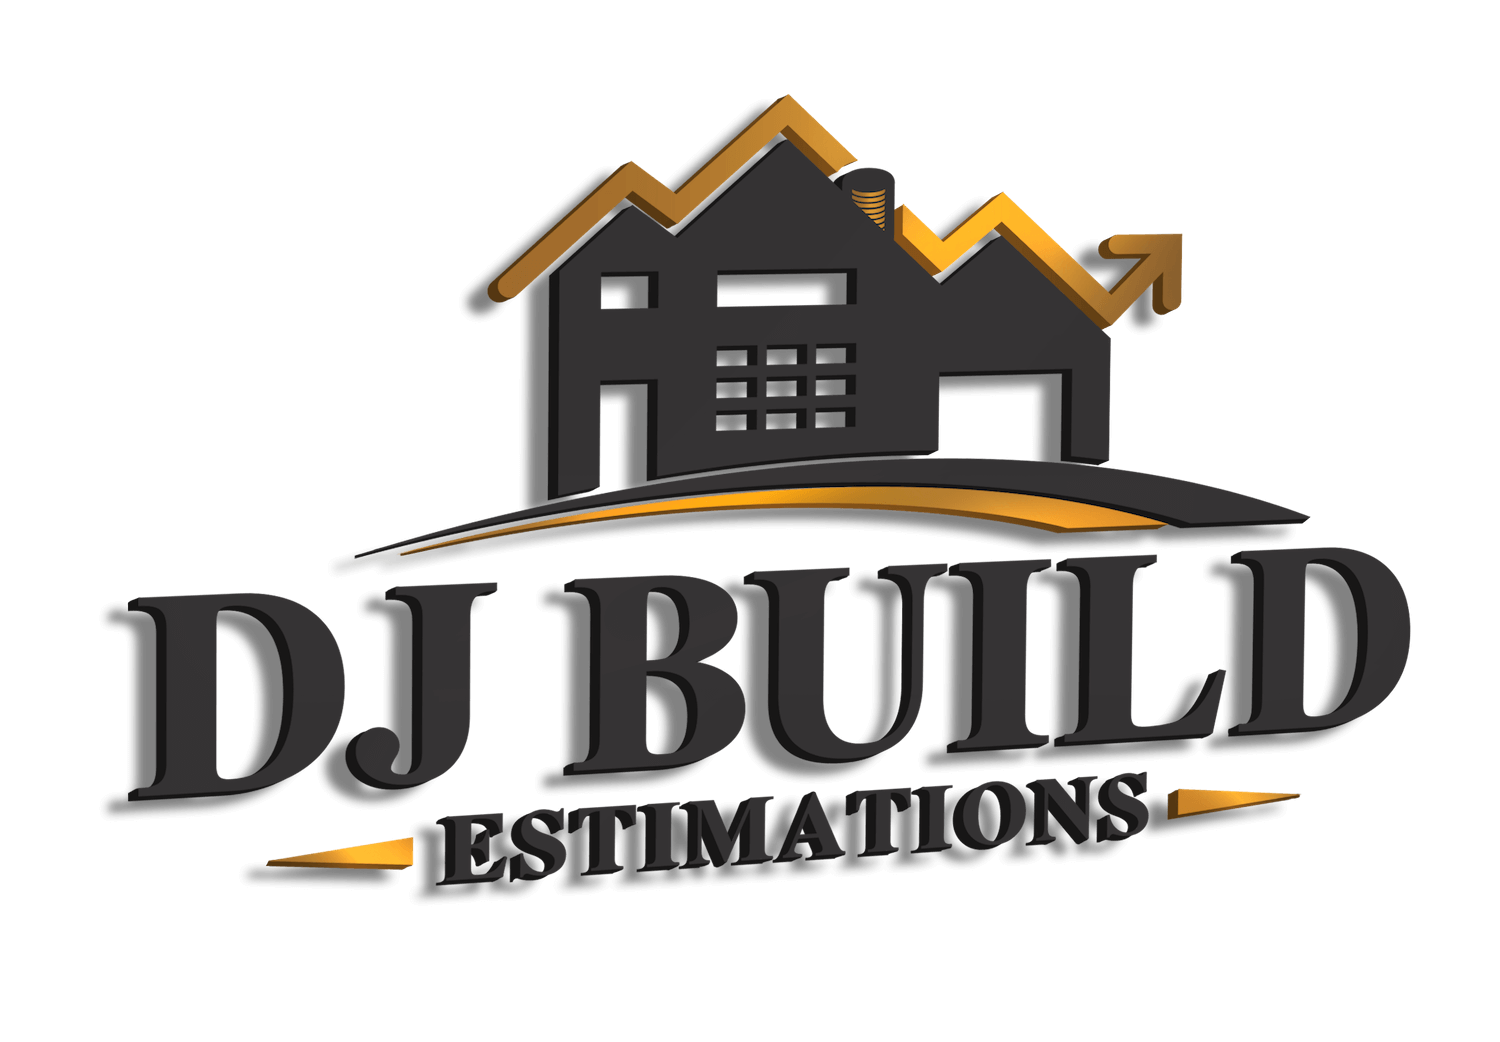 DJ Estimations logo